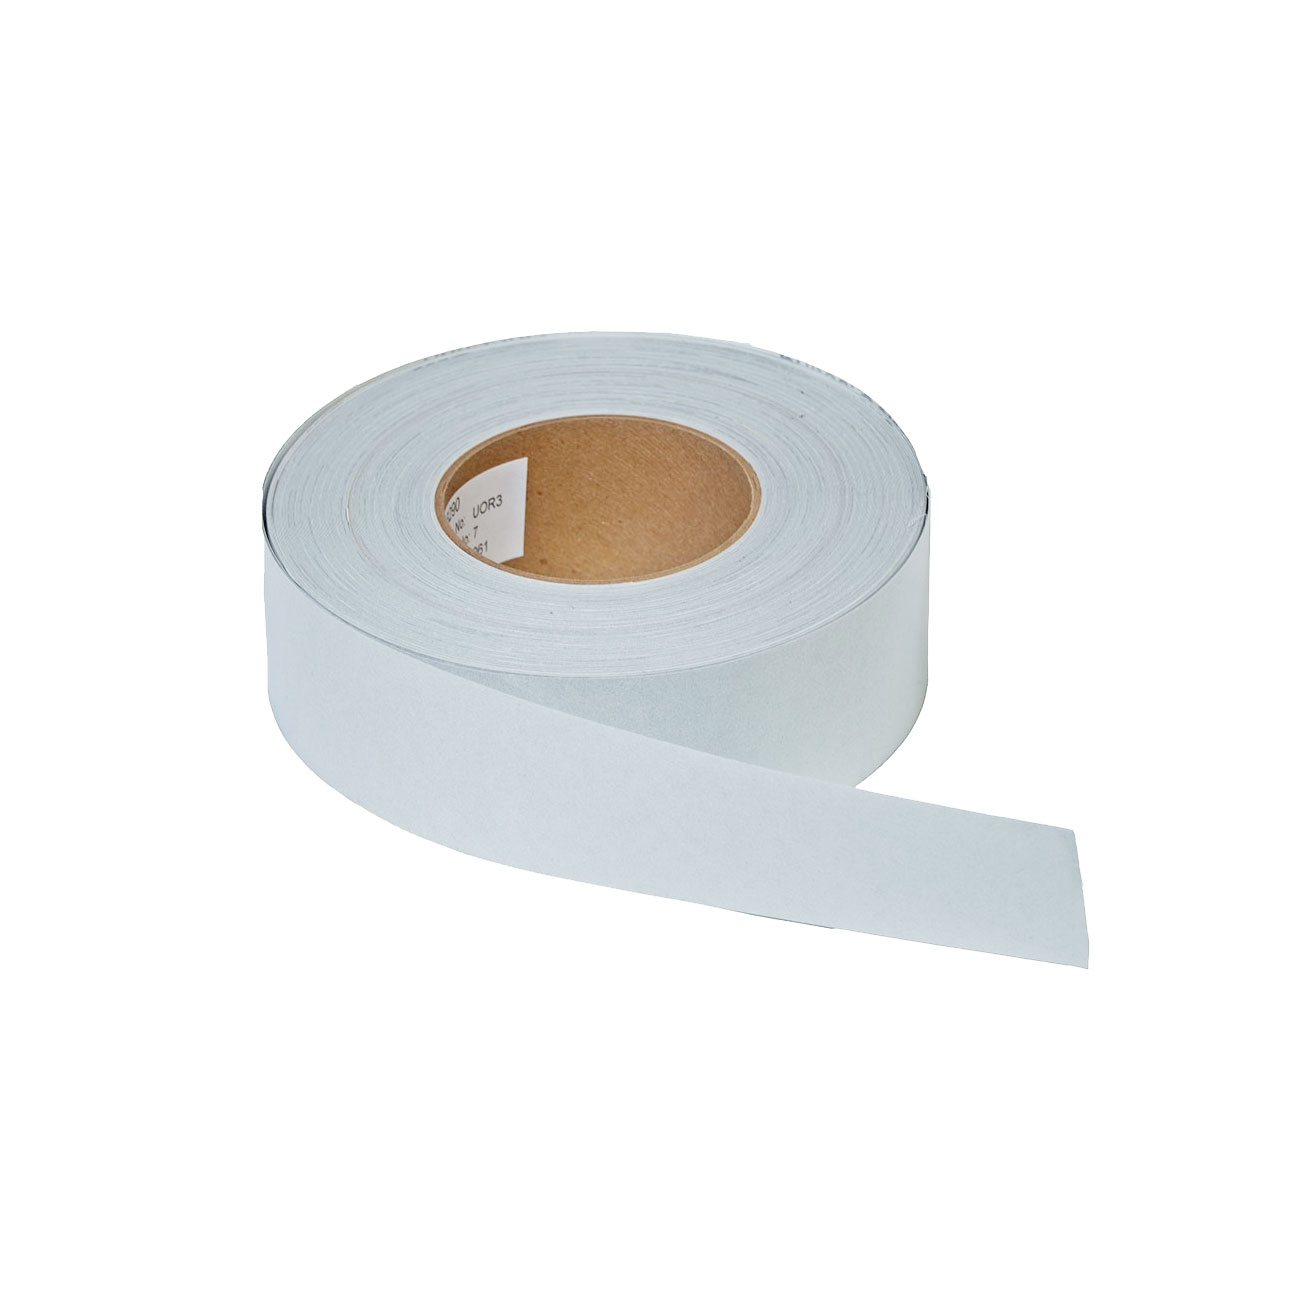 White Reflective Tape Roll for Ambutech Canes - 50 Yards x 2 Inches